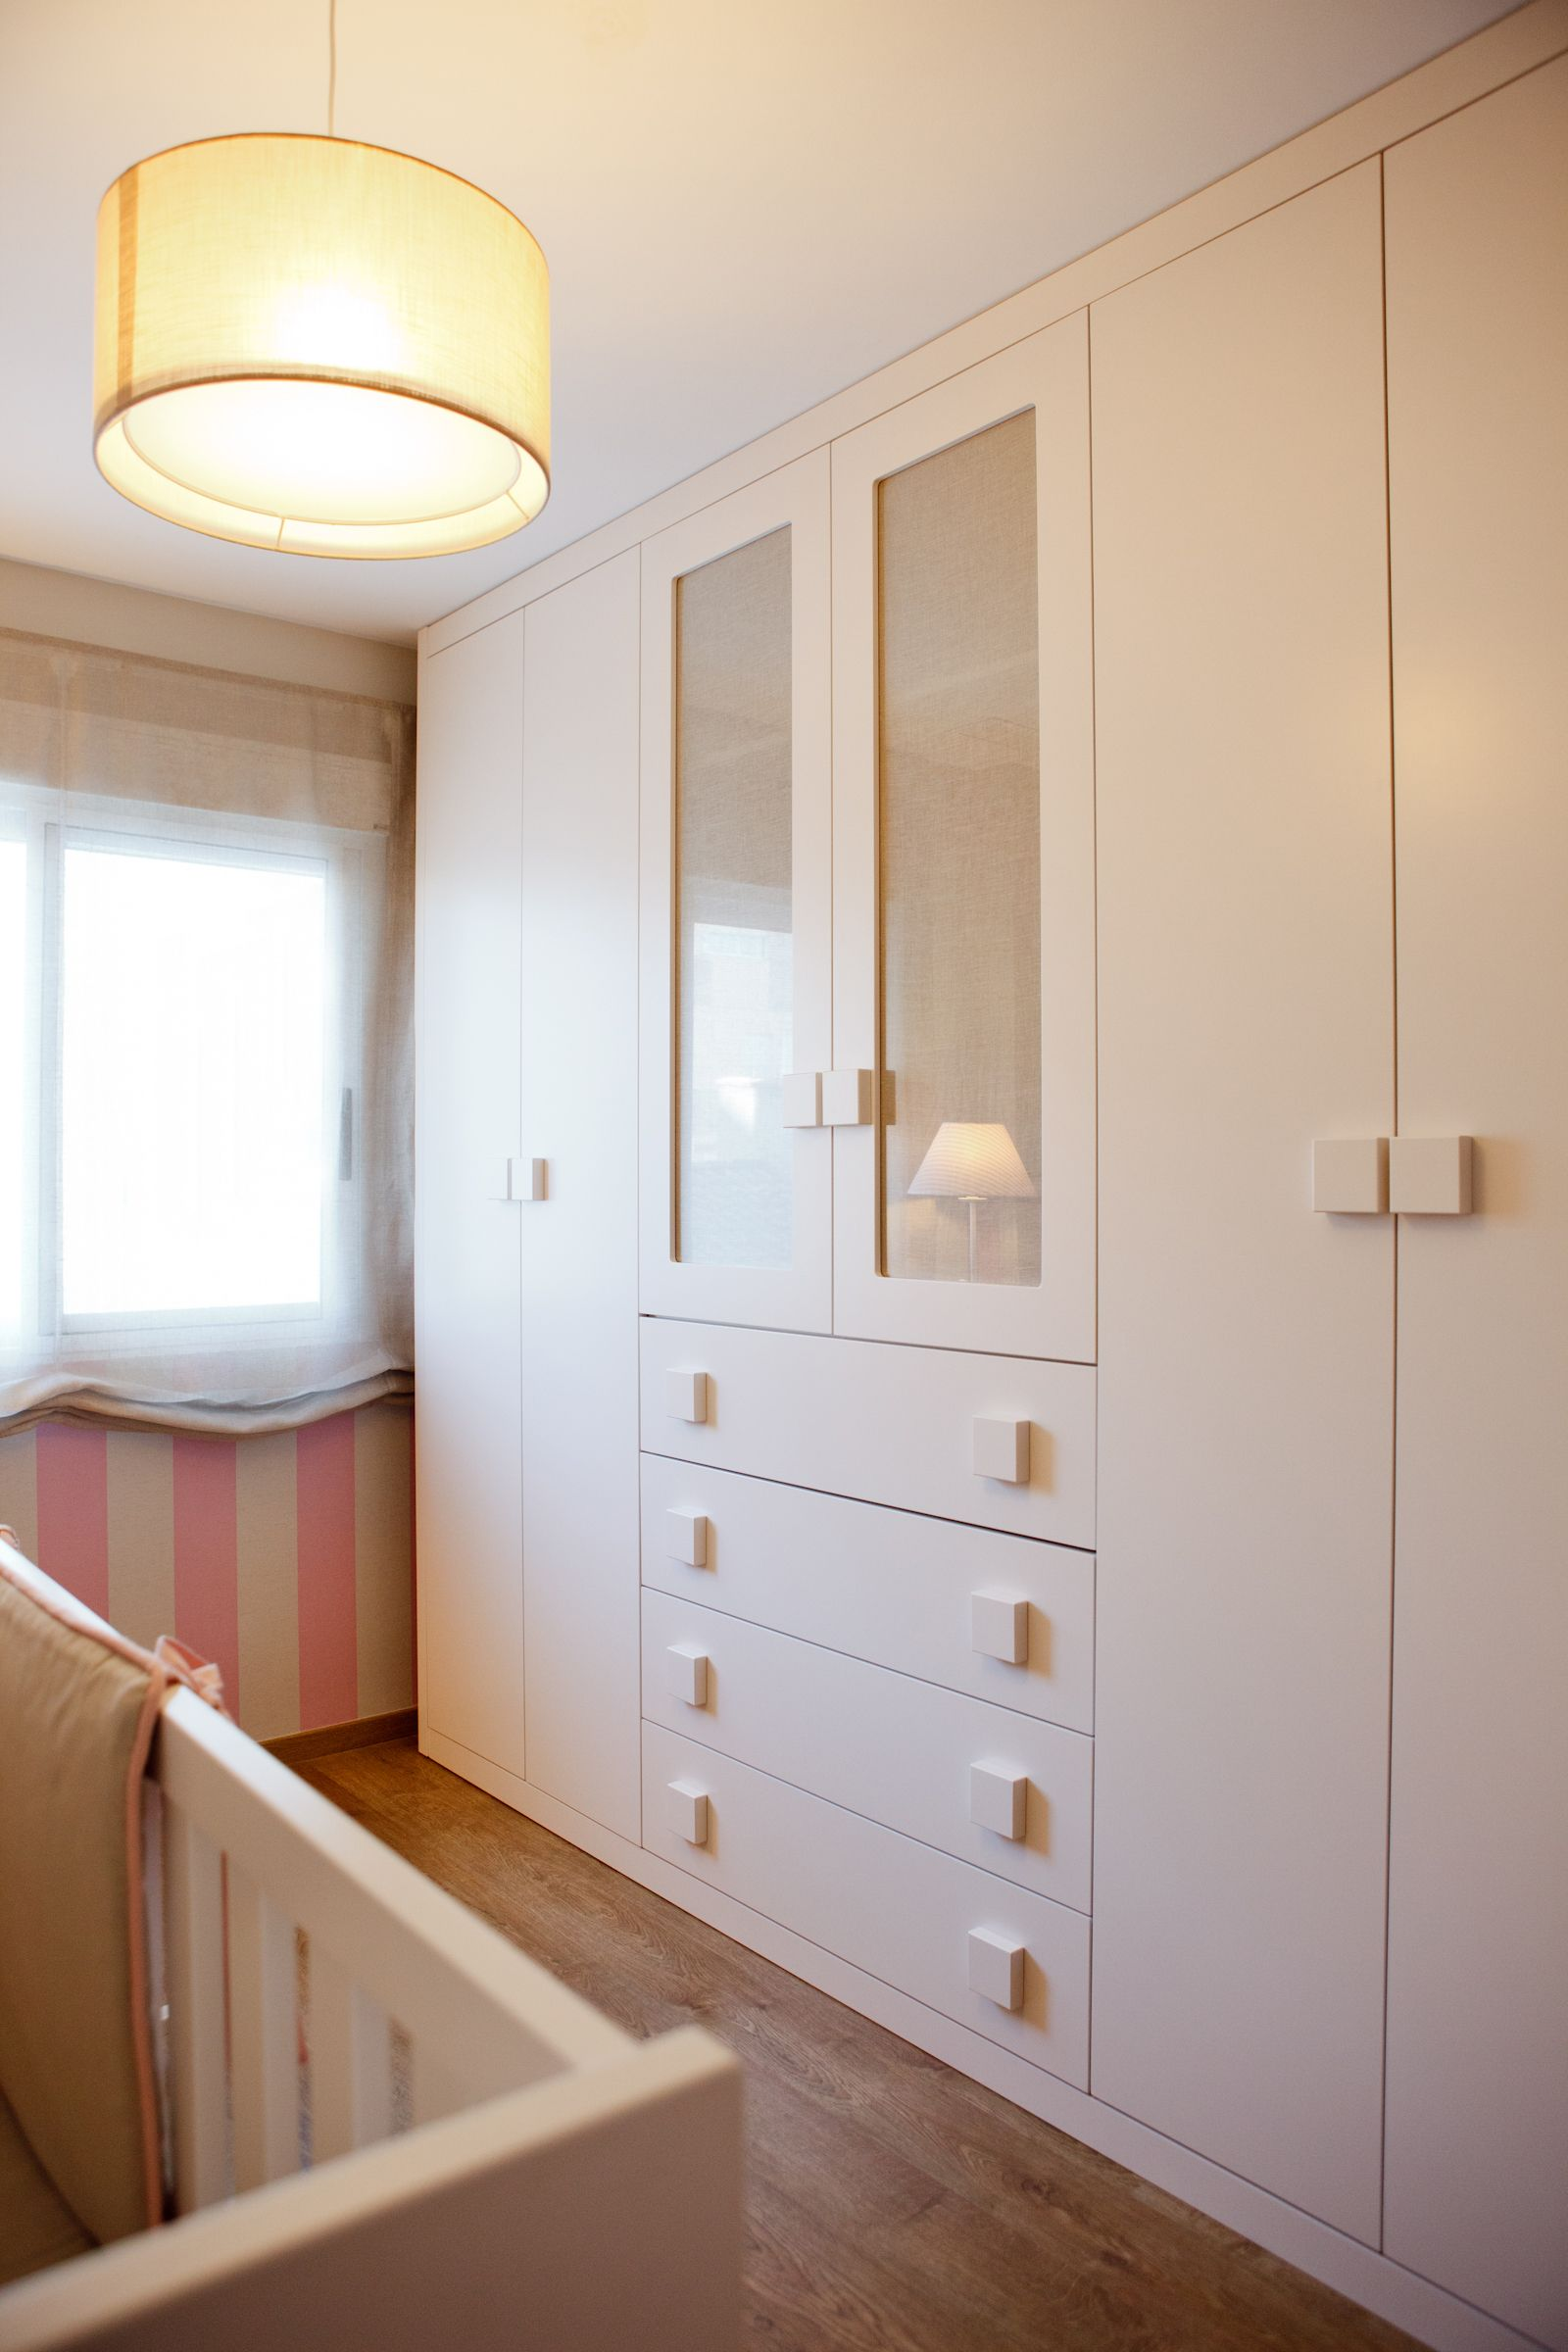 Closet #Wardrobes #Closet #Armoire Storage, Hardware, Accessories For Wardrobes, Dressing